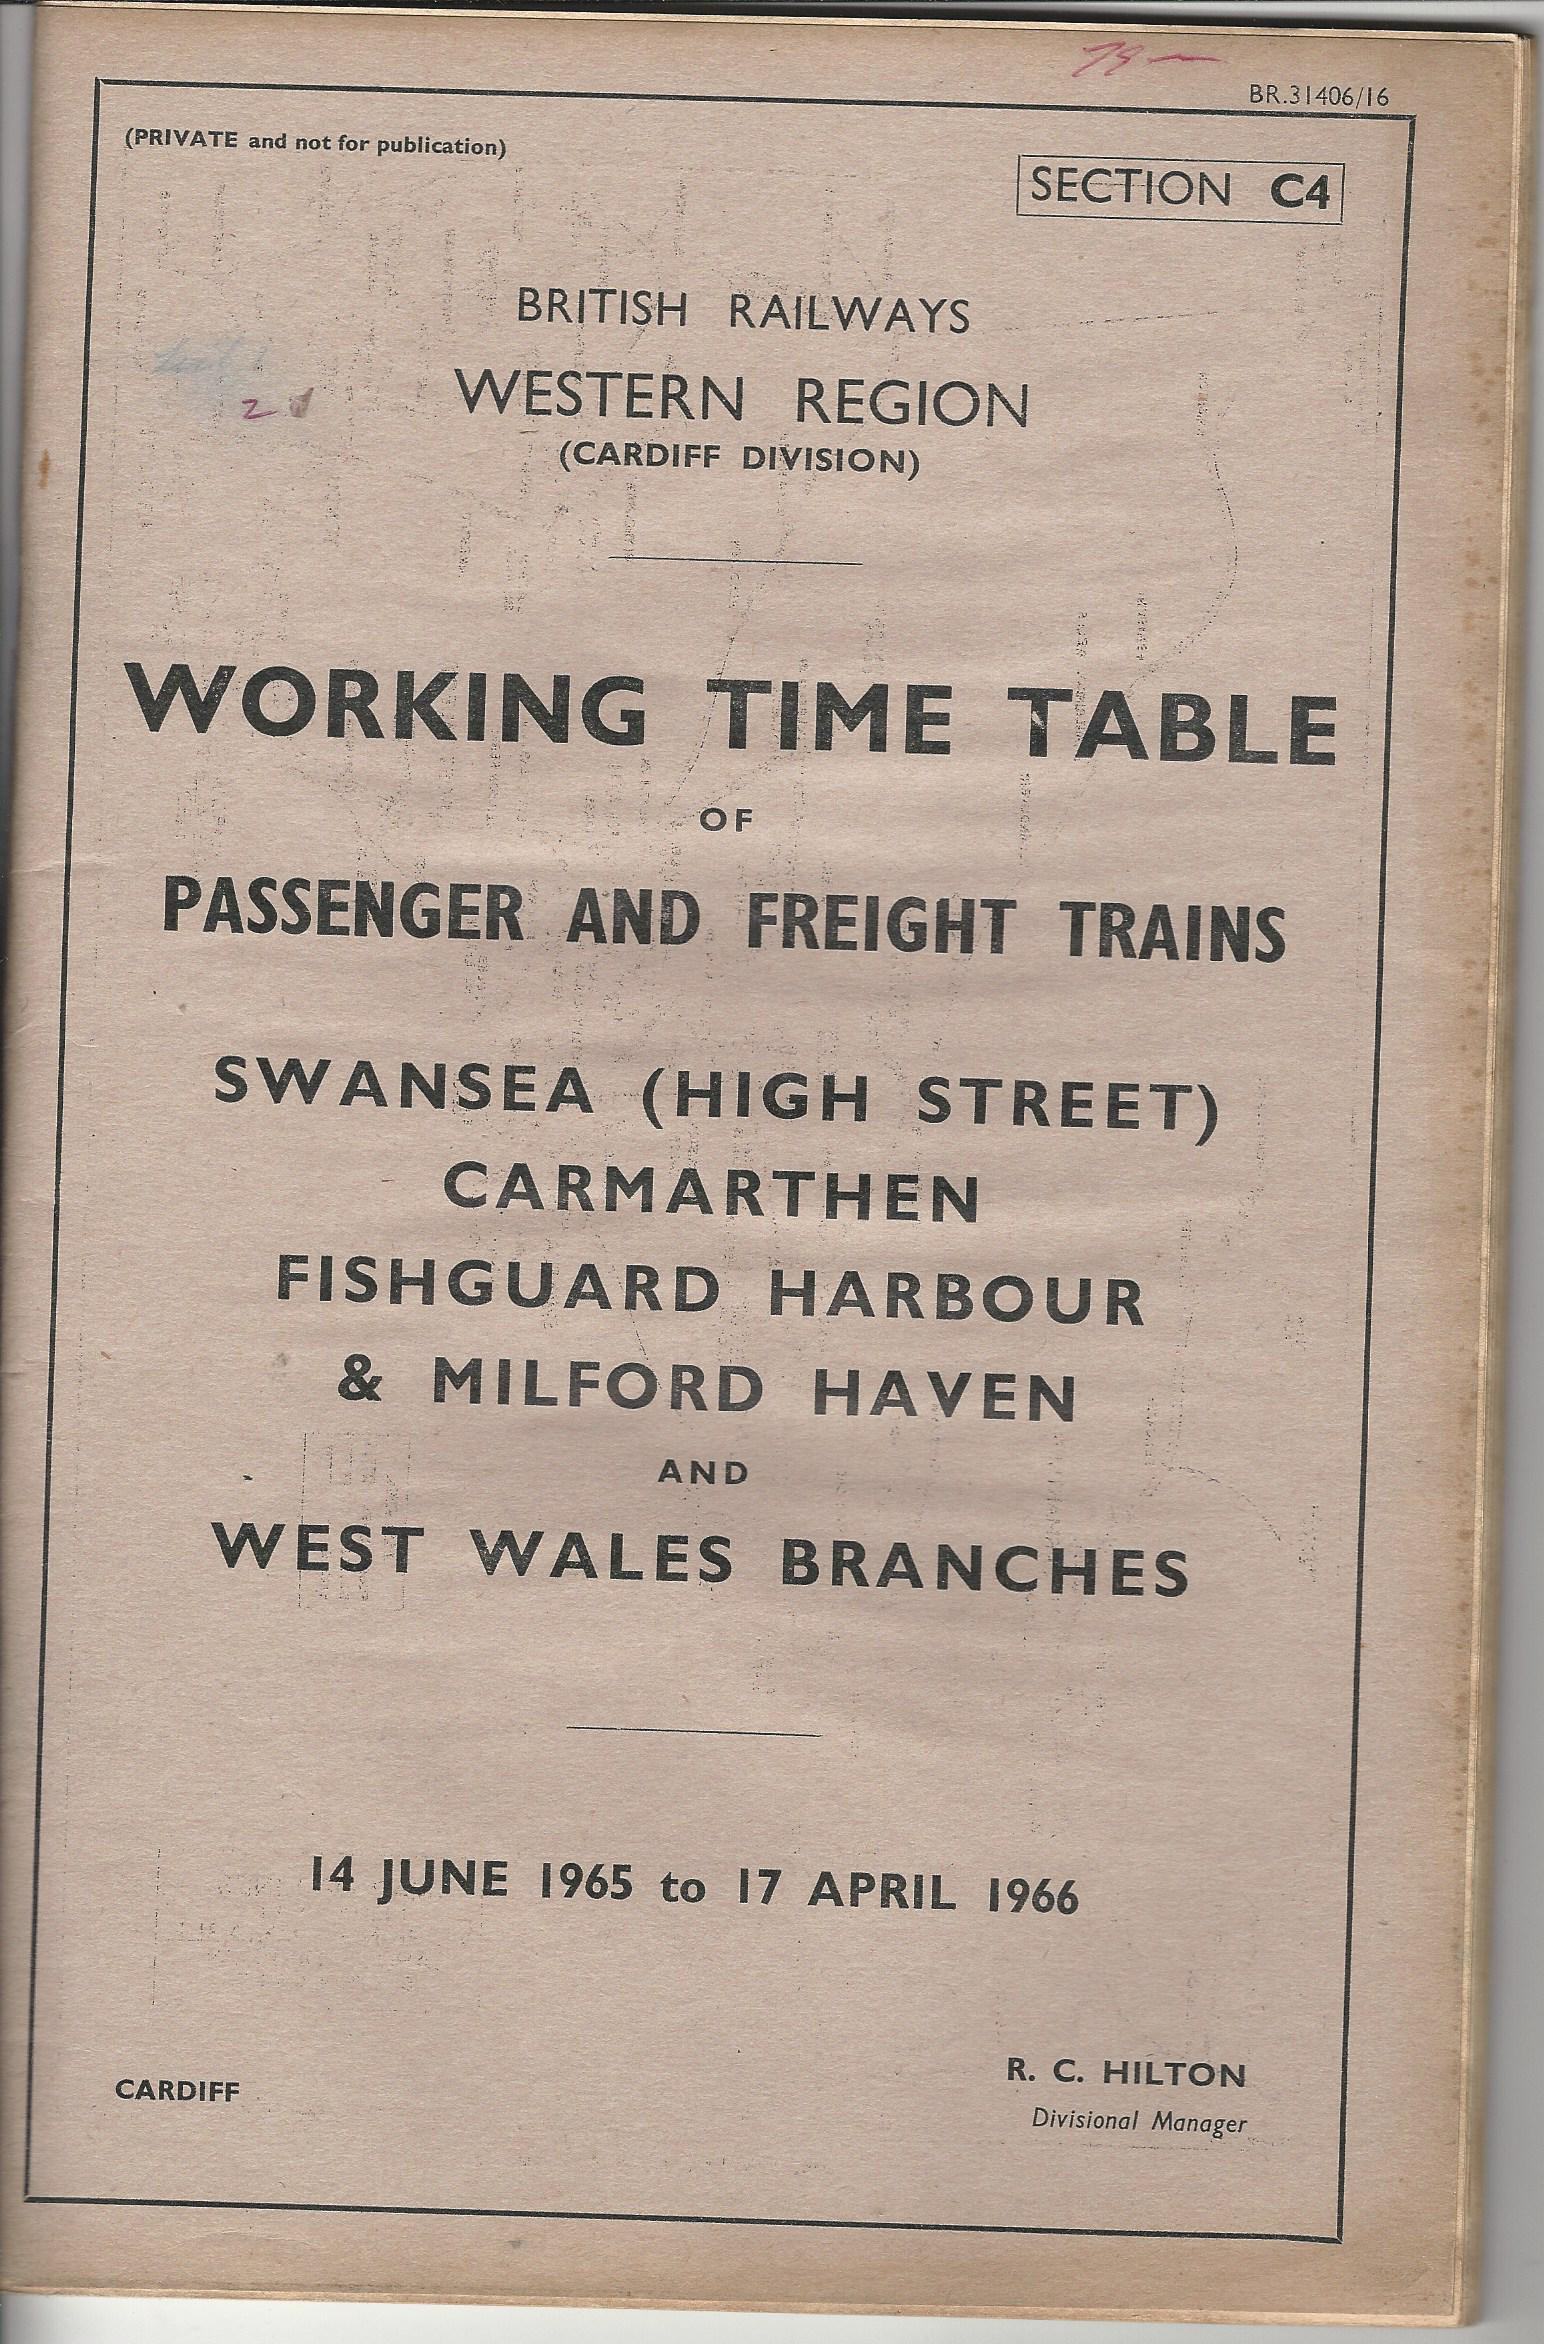 Image for British Railways Western Region: Working Time Table of Passenger and Freight Trains:Swansea (Hight Street) Carmarthen, Fishguard Harbour & Milford Haven and West Wales Branches.